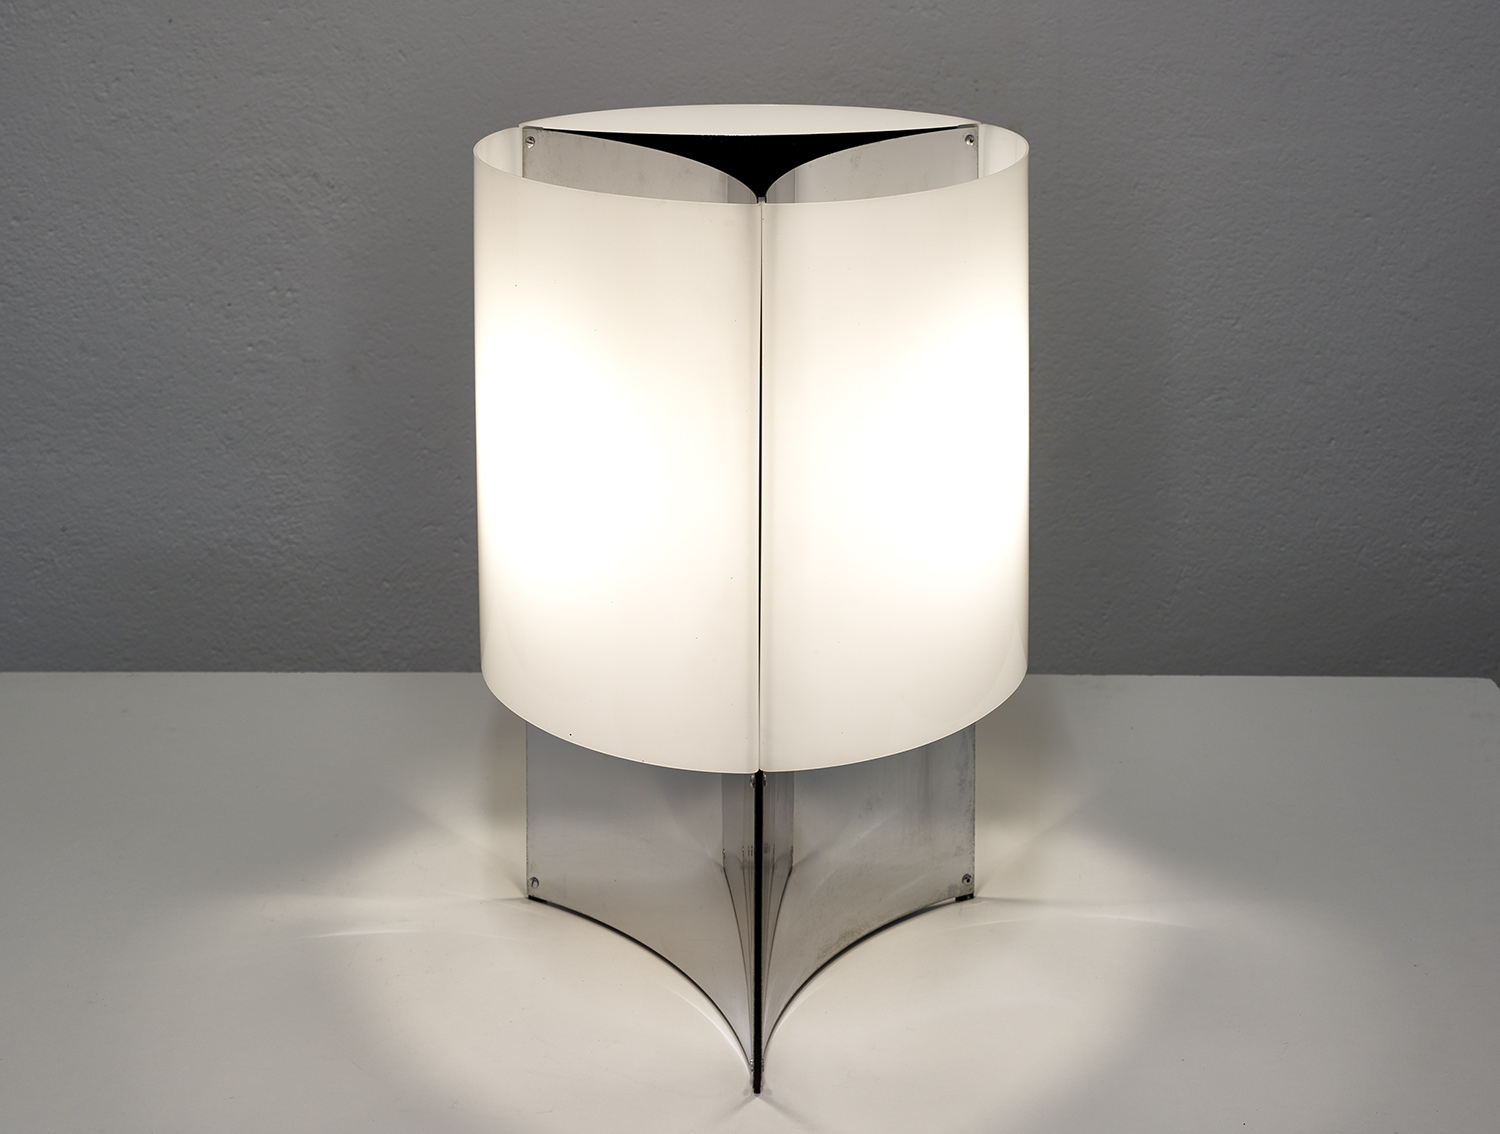 table-lamp-526g-by-lella-massimo-vignelli-for-arteluce-1965-image-01